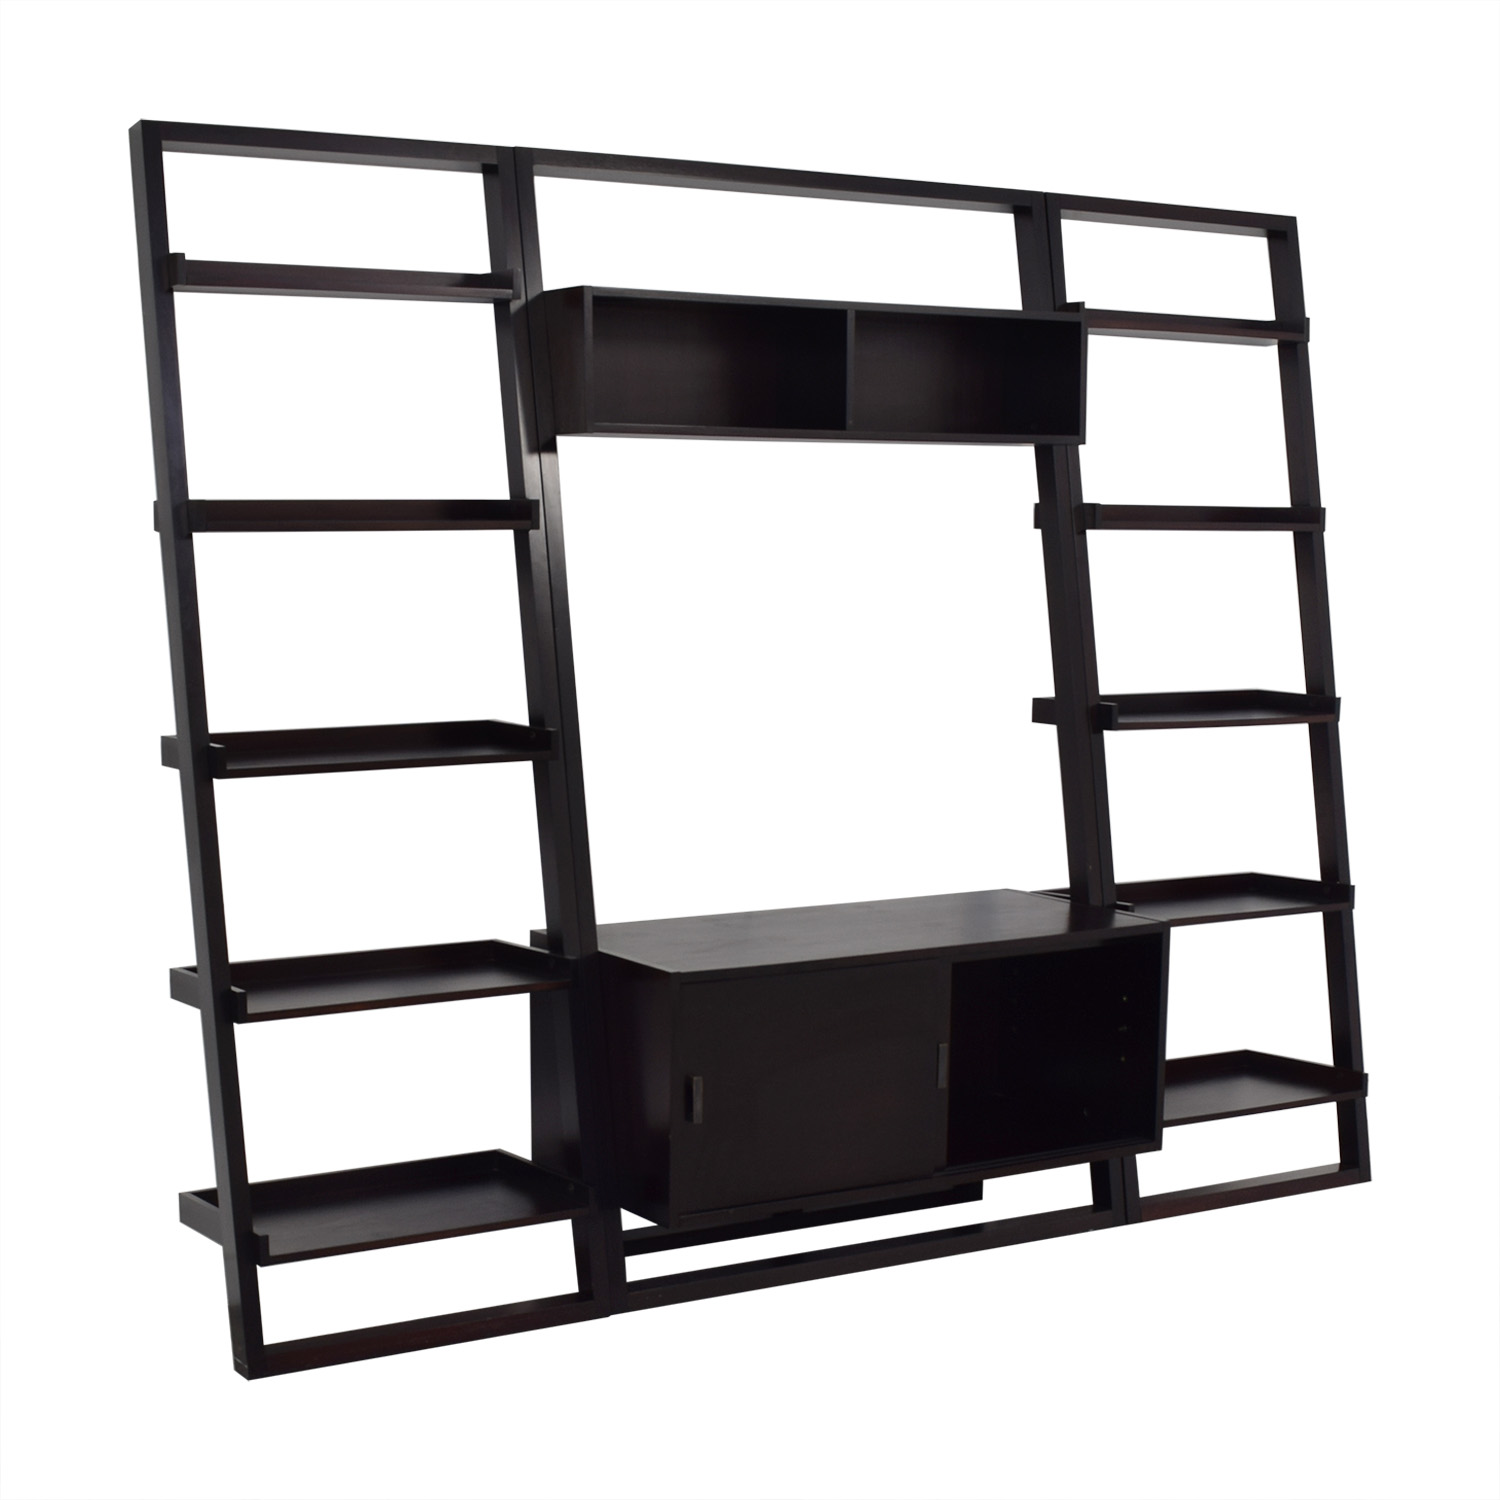 Crate & Barrel Crate & Barrel Sawyer Media Stand with Bookcases